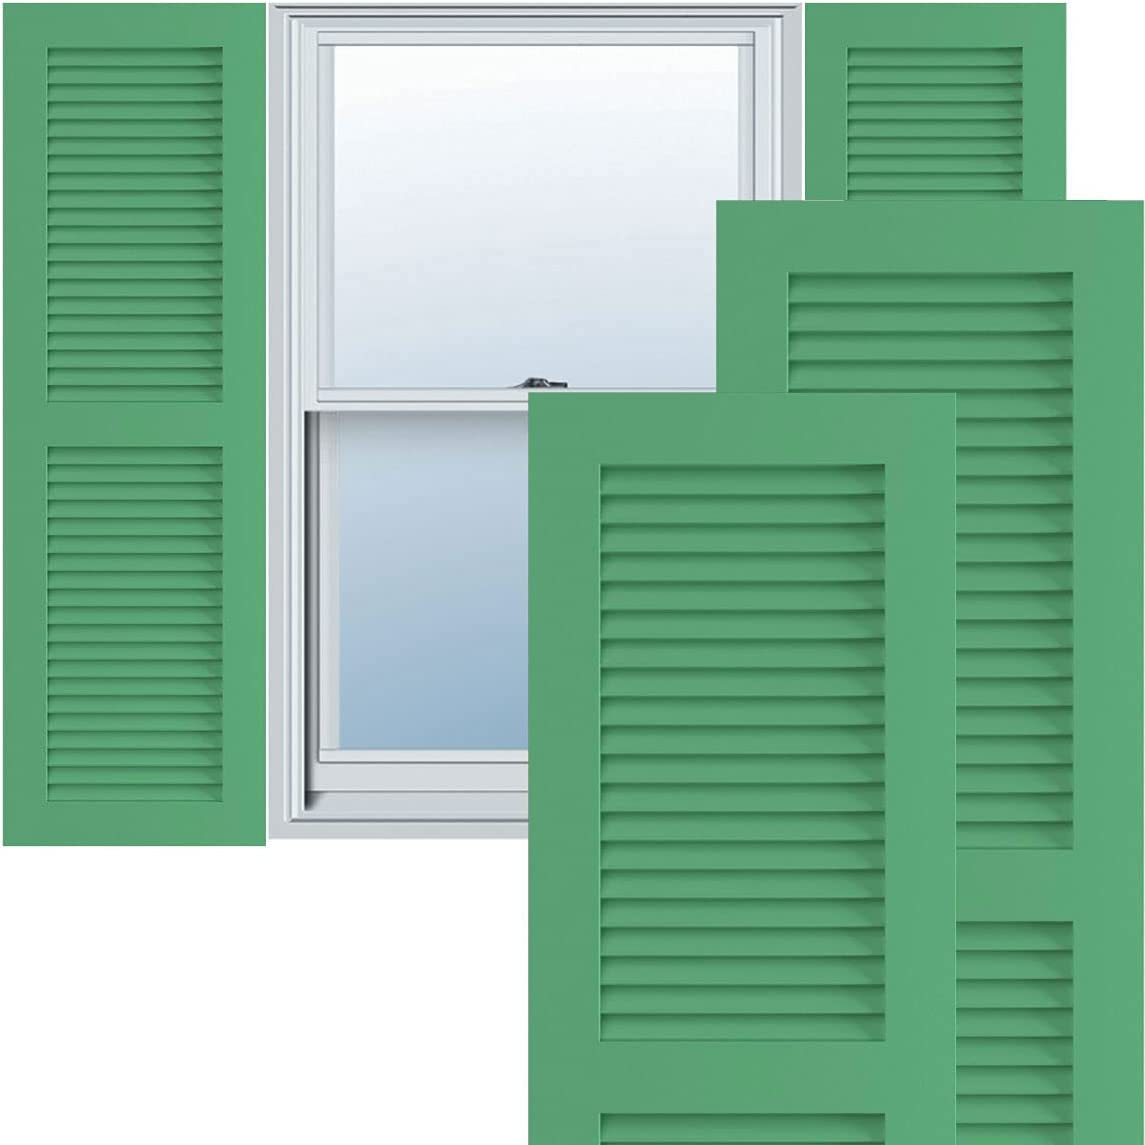 Ekena Millwork TFP101LV Credence True ! Super beauty product restock quality top! Fit Two PVC Shutters Louver Equal